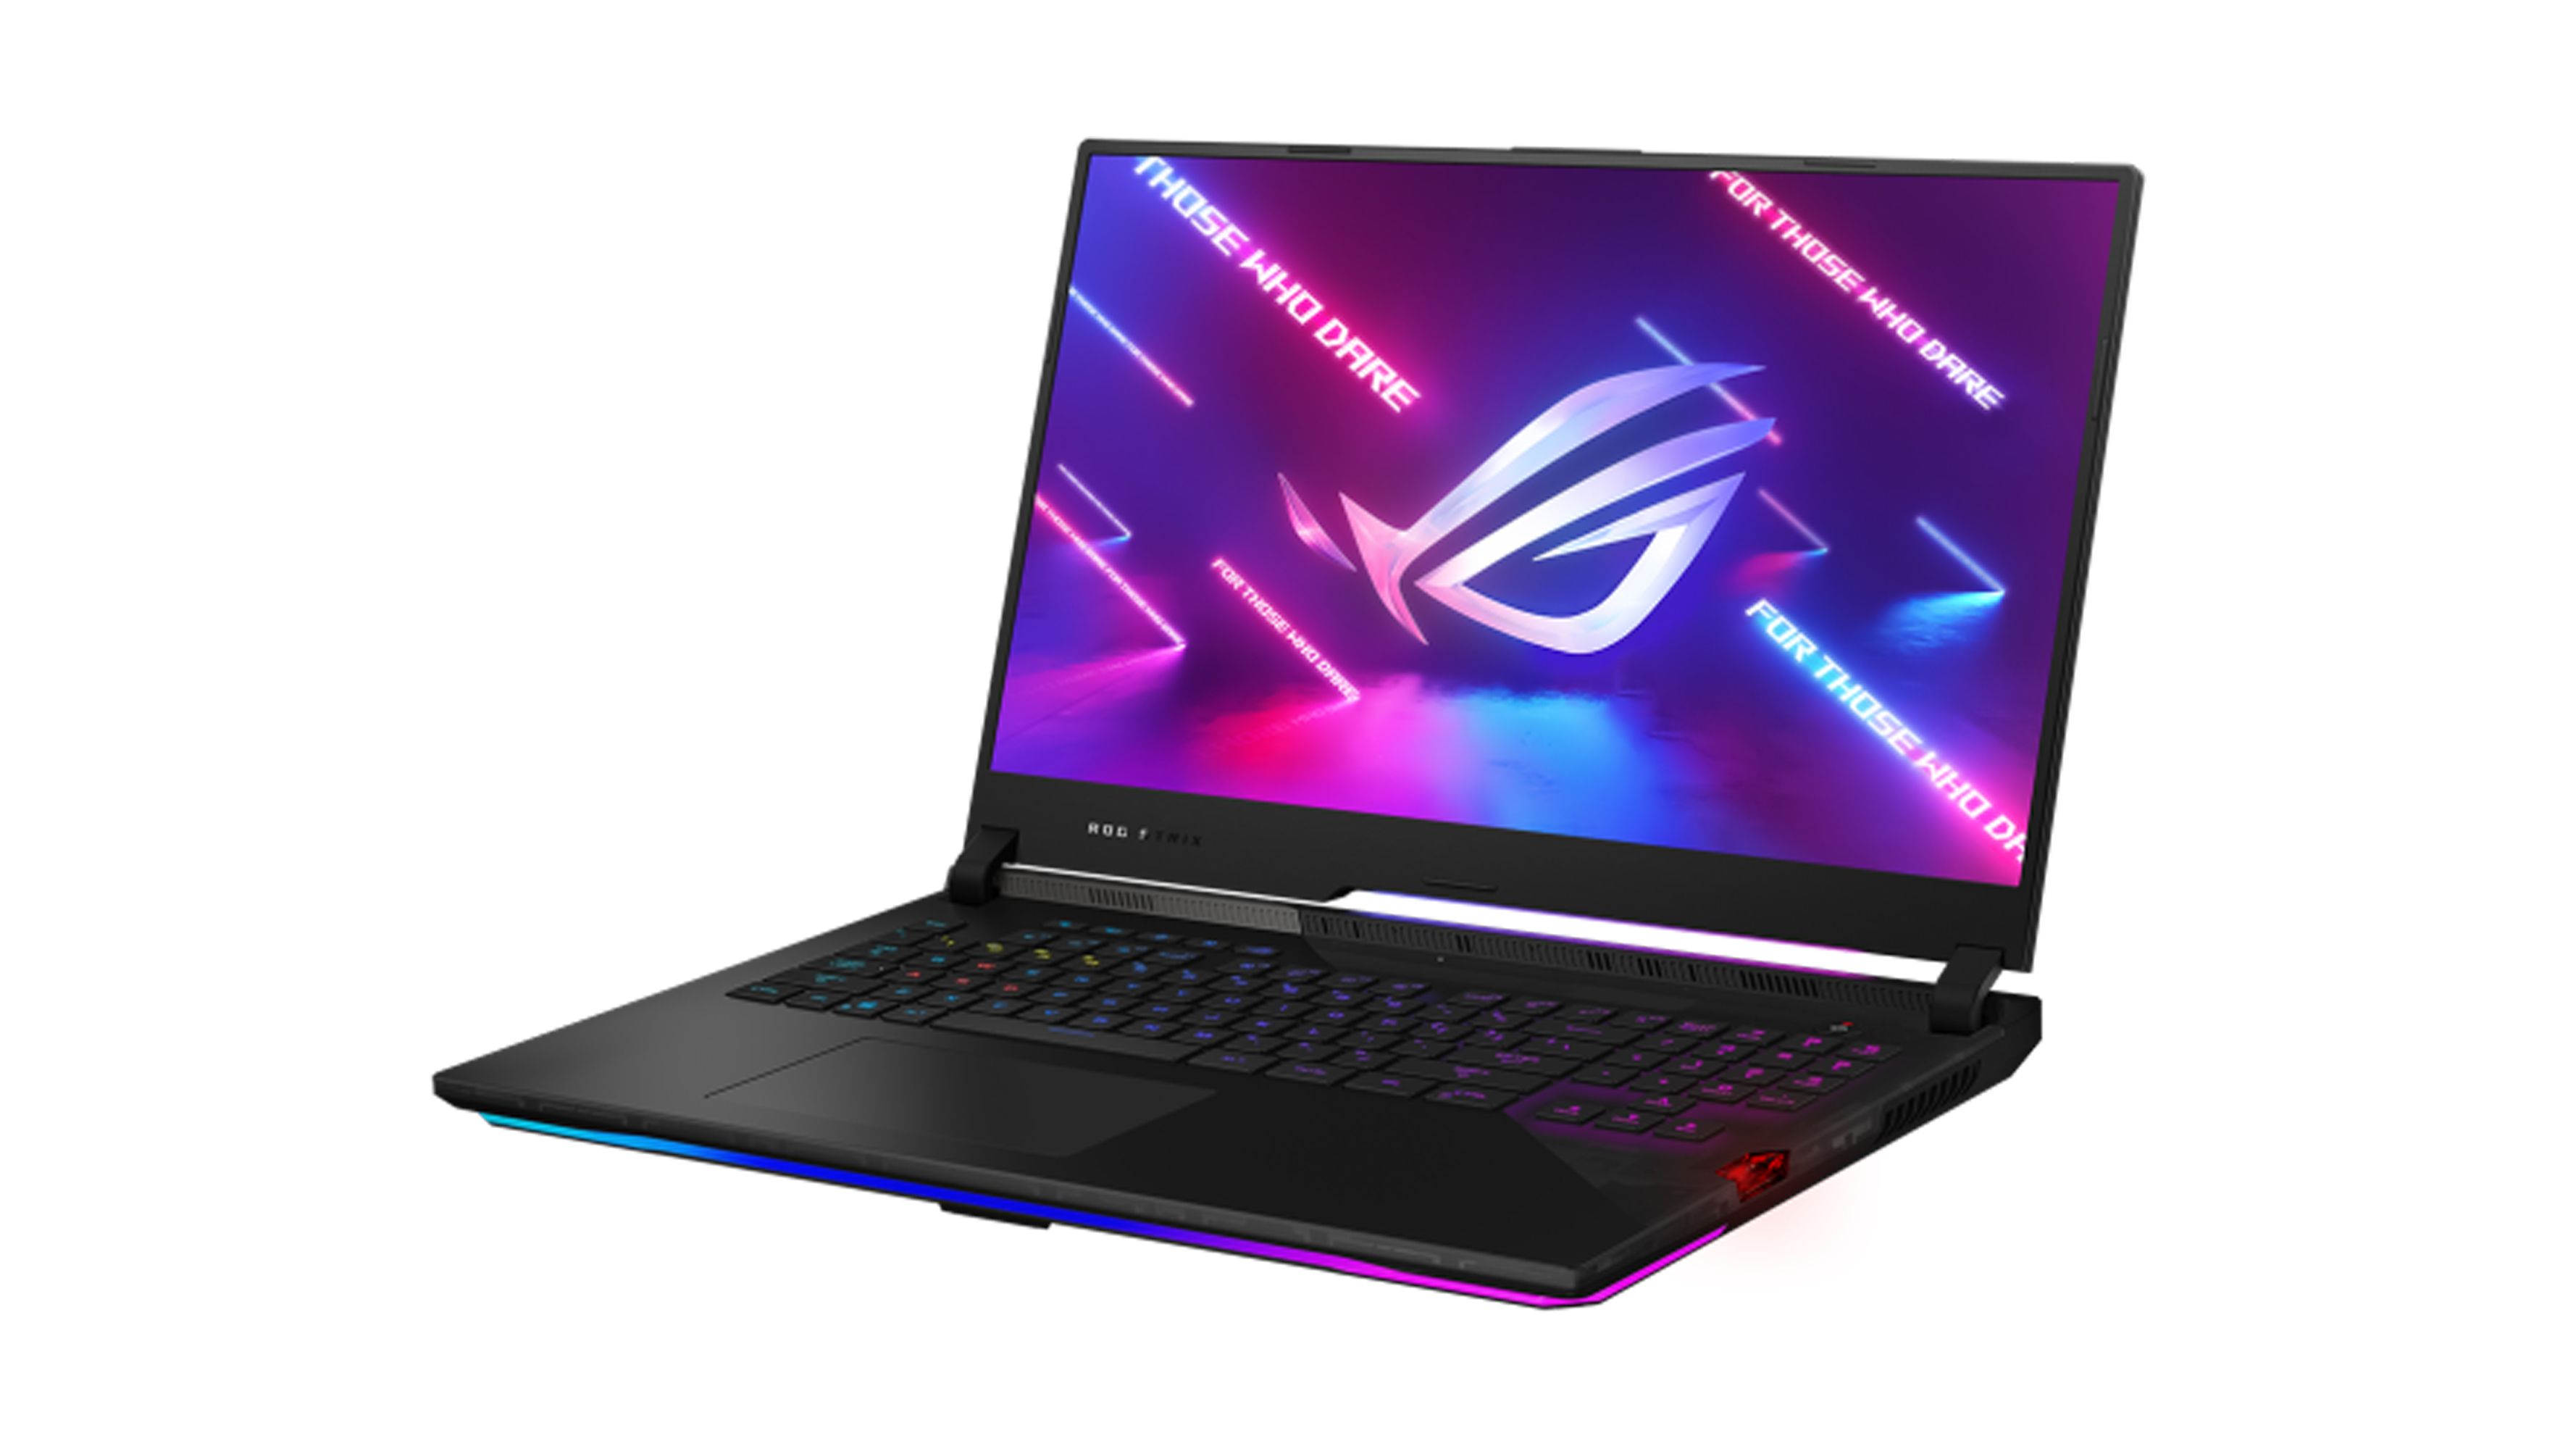 Asus ROG Strix SCAR 17 G733 on a white background. The gaming laptop is open, and there's a pink and purple background on the screen with the Asus ROG logo.